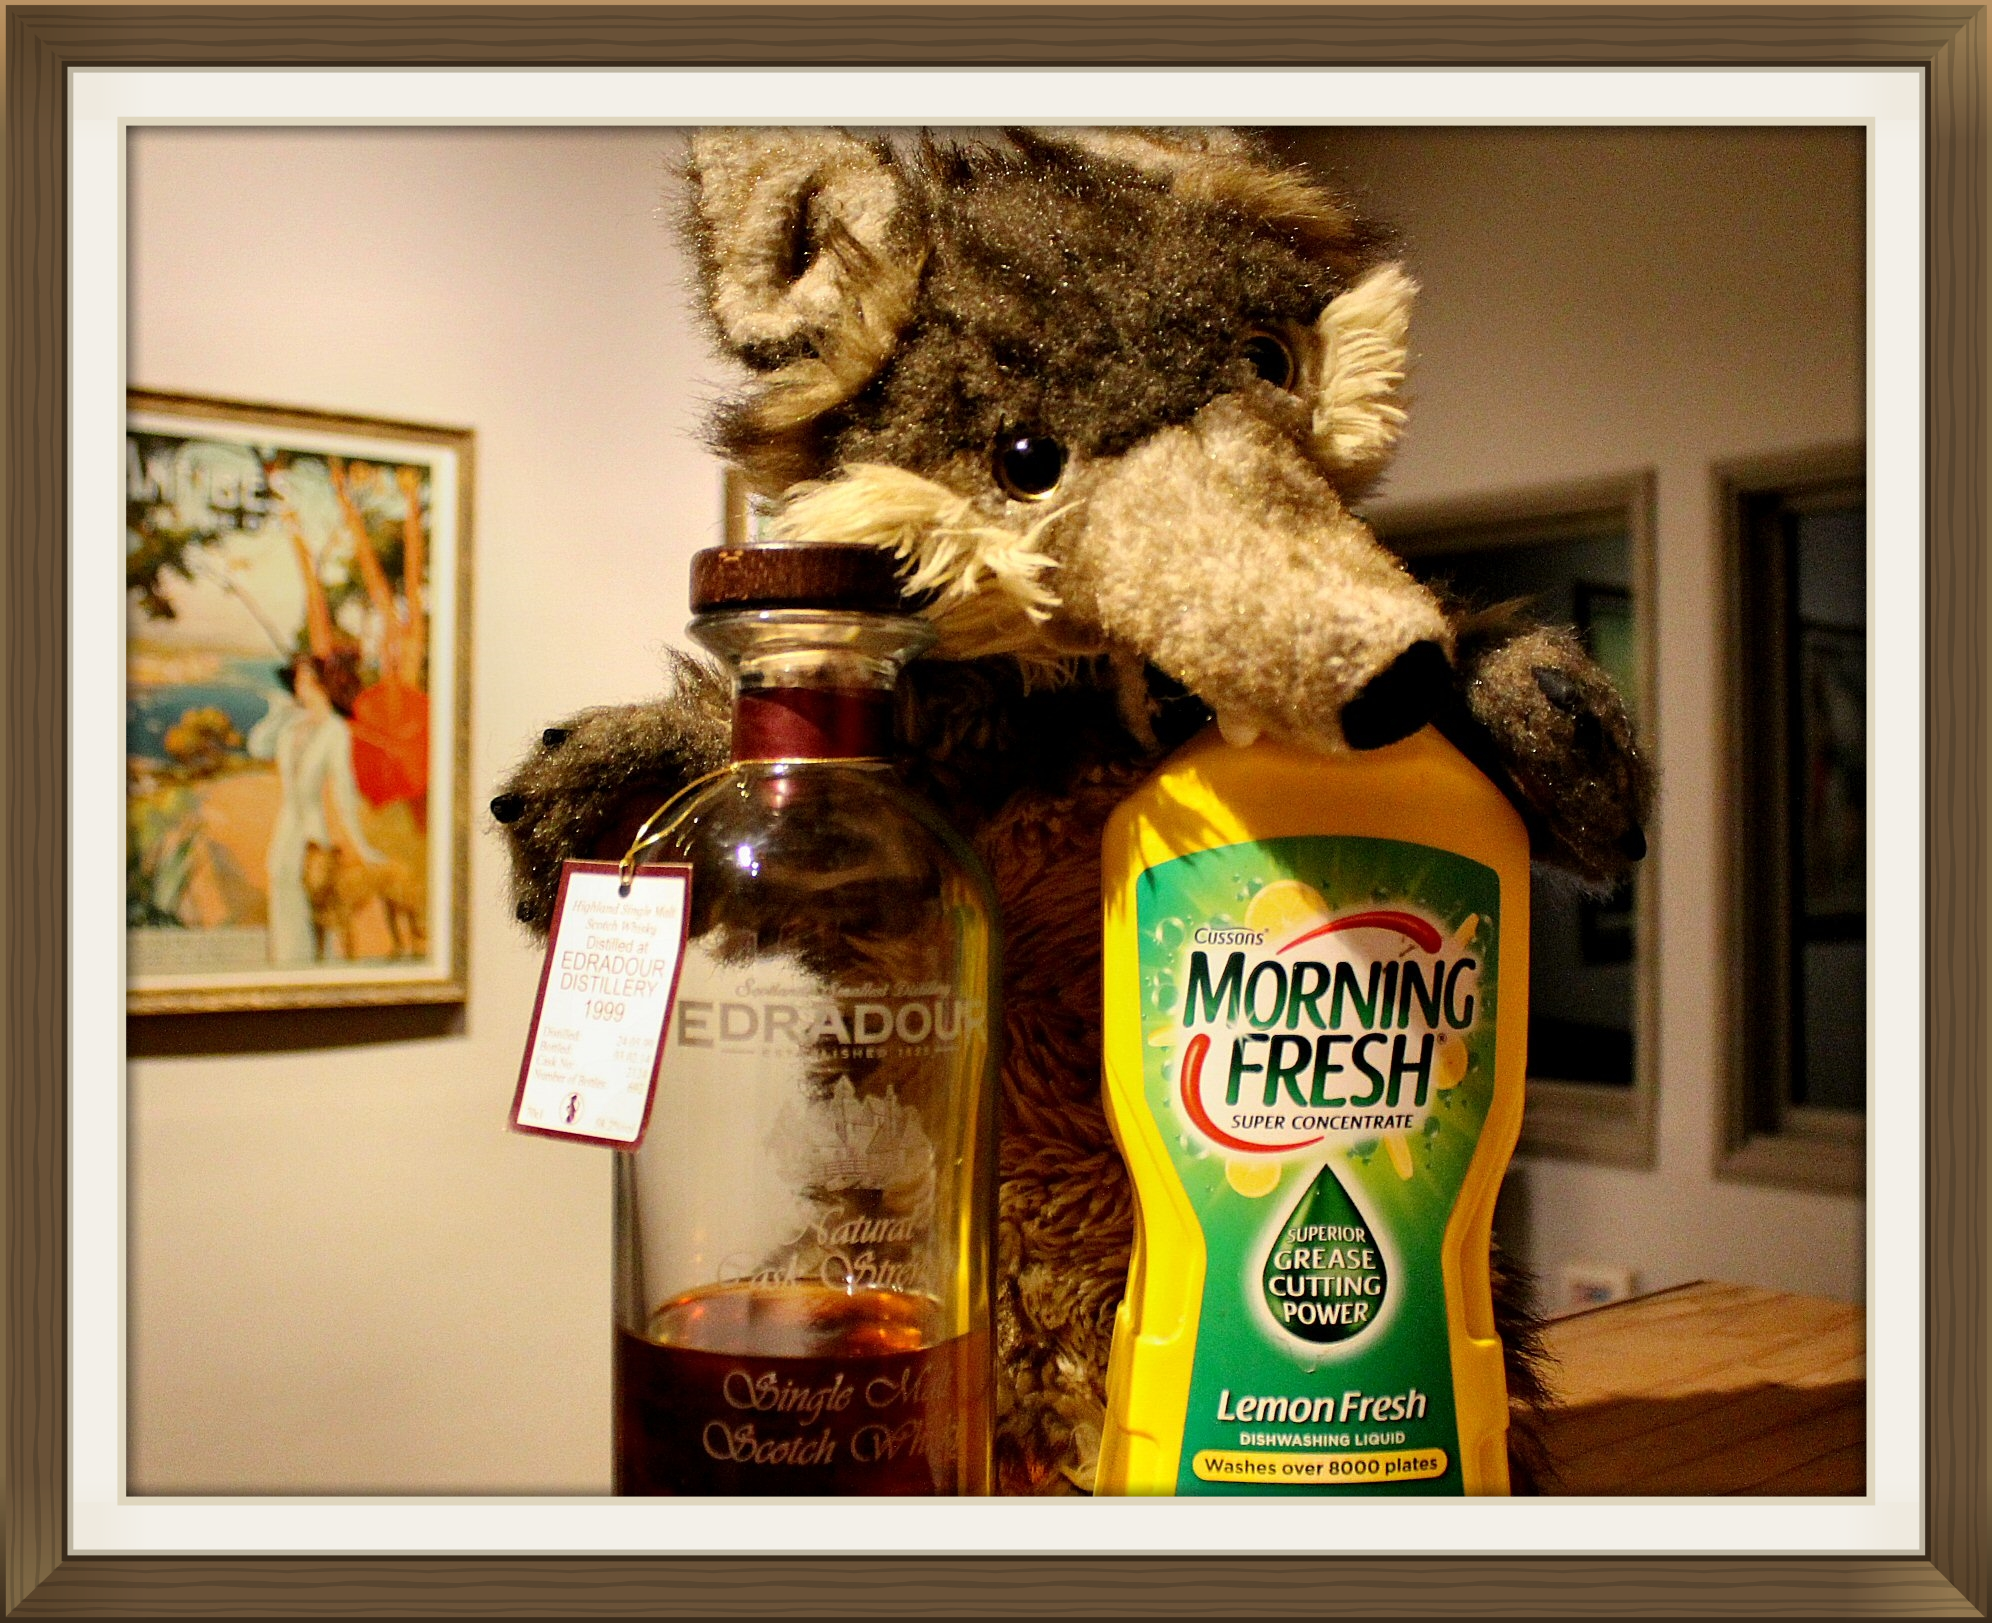 Hitch says one of these is too soapy. The other is dishwashing liquid.